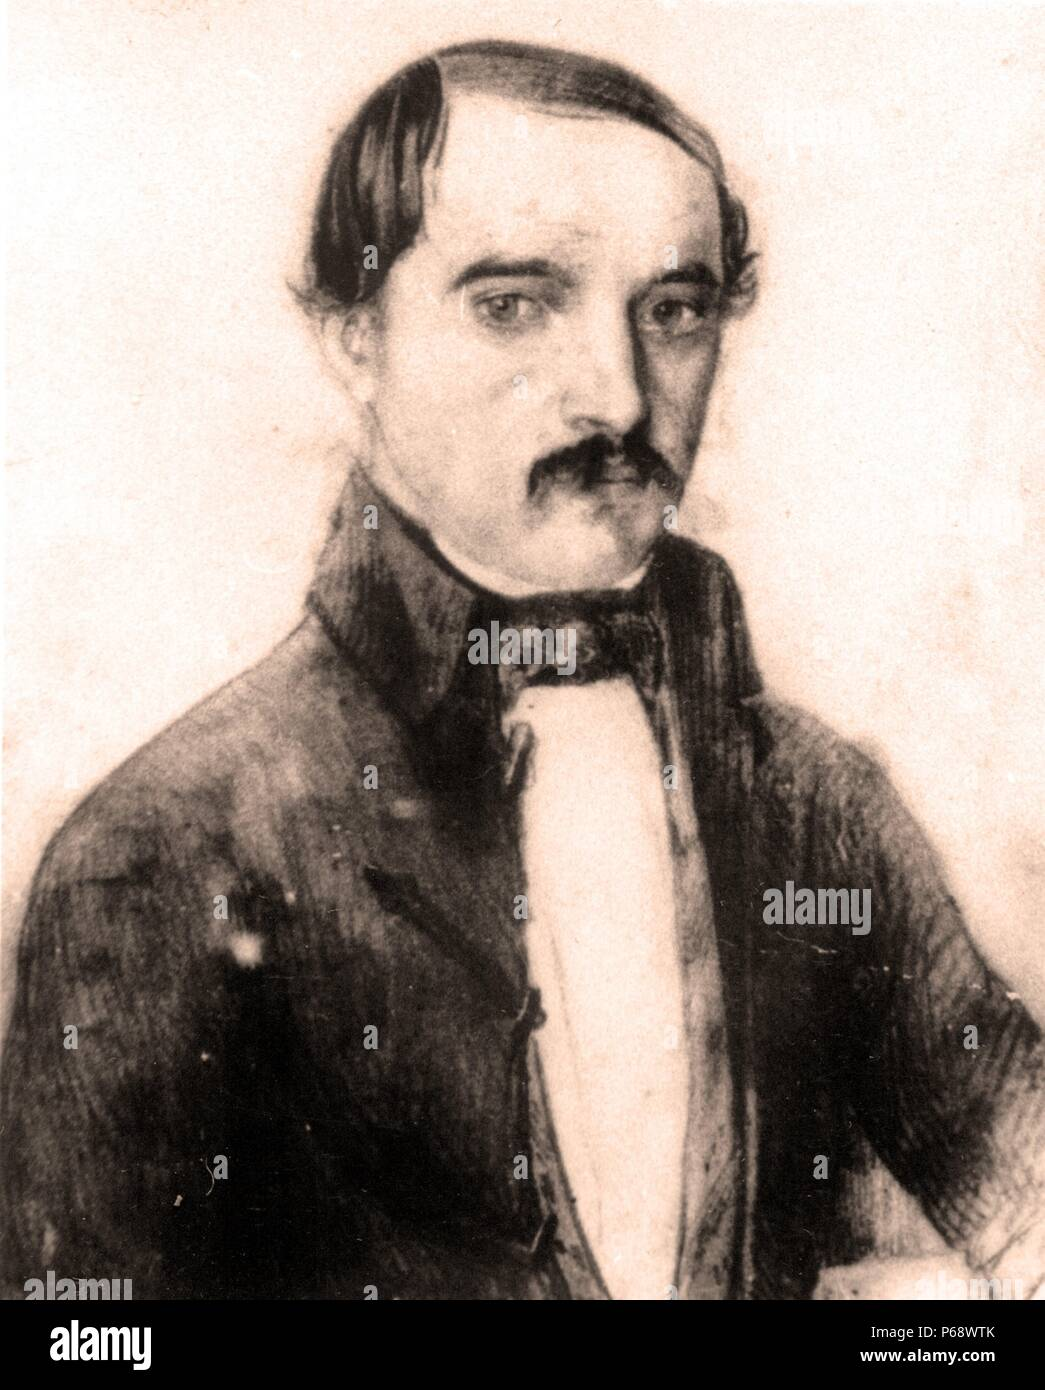 Jan S?omka (1842–1932)Polish mayor of Dzików in the late 19th and early 20th century. known for his memoir, From Serfdom to Self-Government: Memoirs of a Polish Village Mayor, with its descriptions of Polish peasant life from the time of Polish serfdom until after World War I. - Stock Image